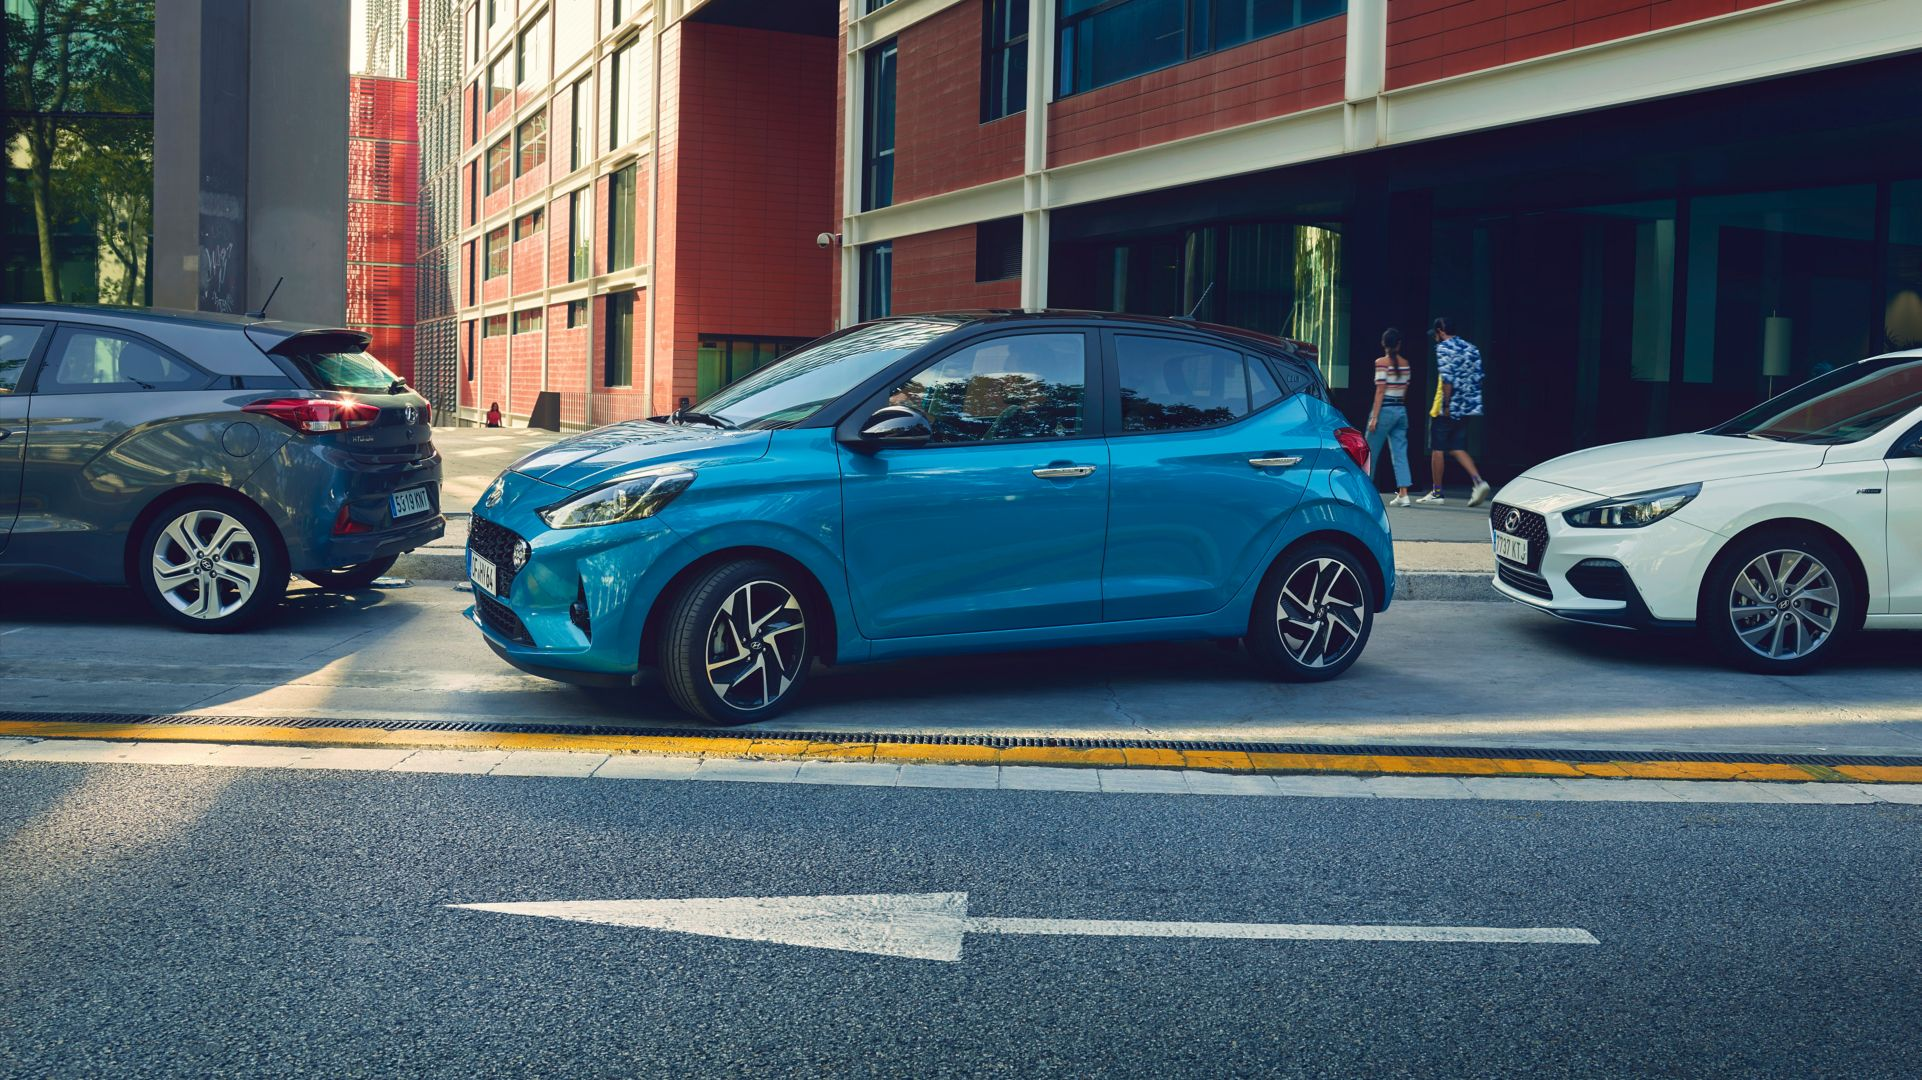 The image of the all-new Hyundai i10 parking on the street.